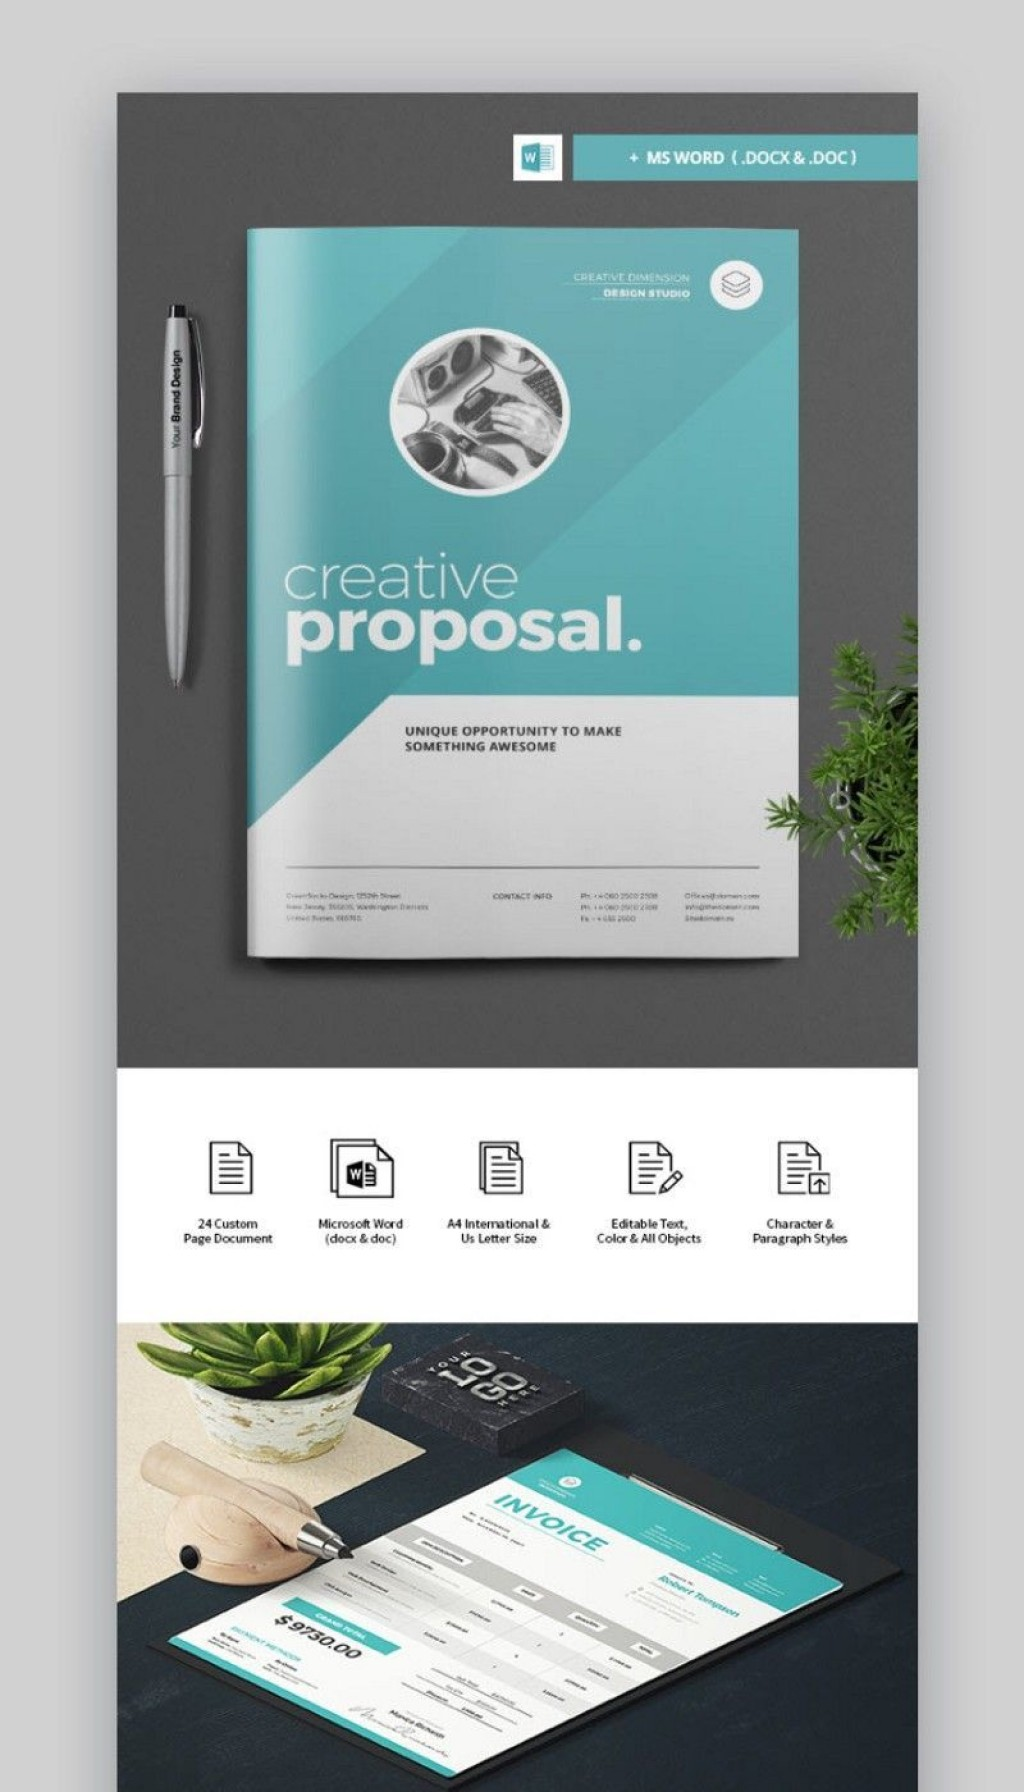 000 Stunning Graphic Design Proposal Template Word Concept Large